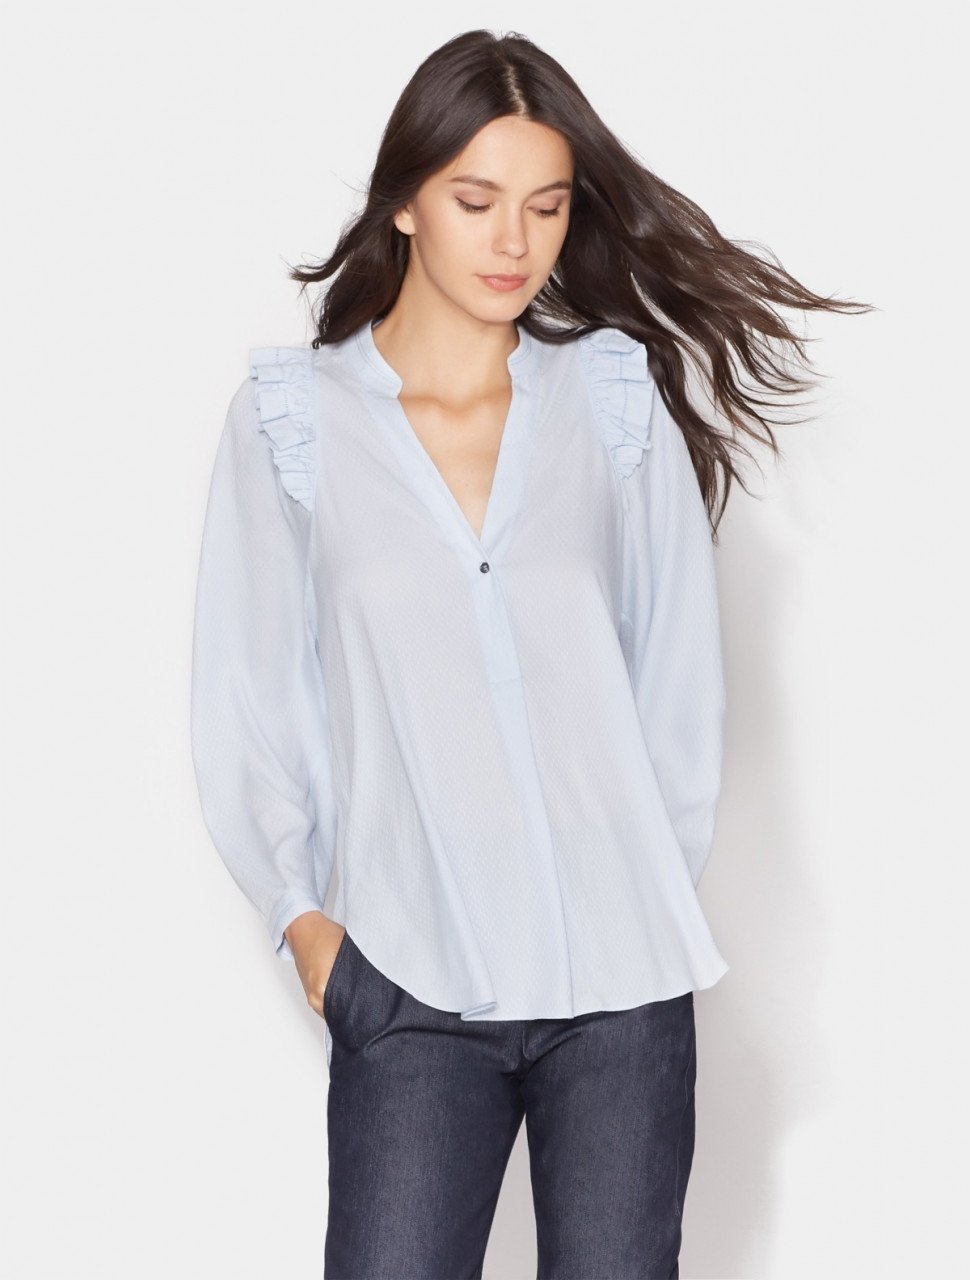 LONG SLEEVE TOP WITH RUFFLE DETAIL